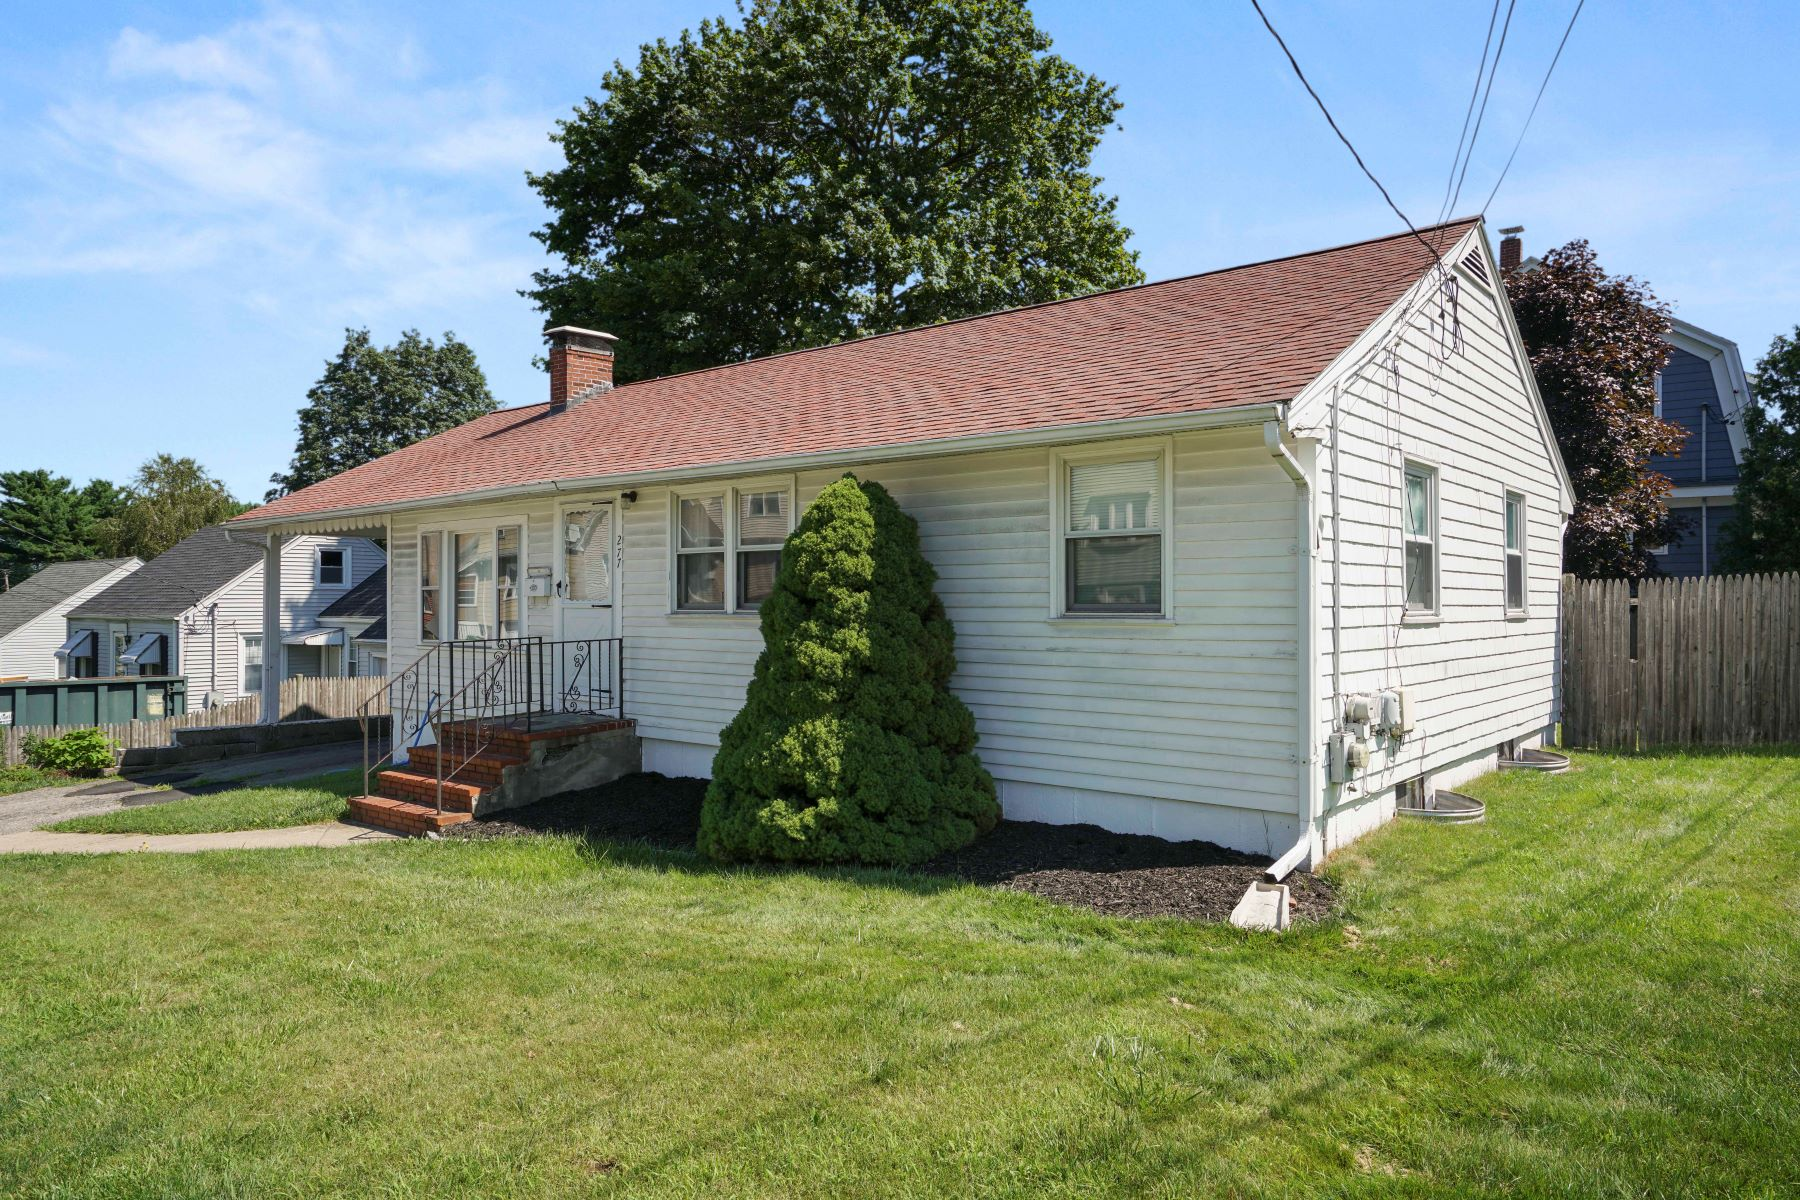 Single Family Homes for Sale at 277 Shaw Street, Braintree 277 Shaw Street Braintree, Massachusetts 02184 United States